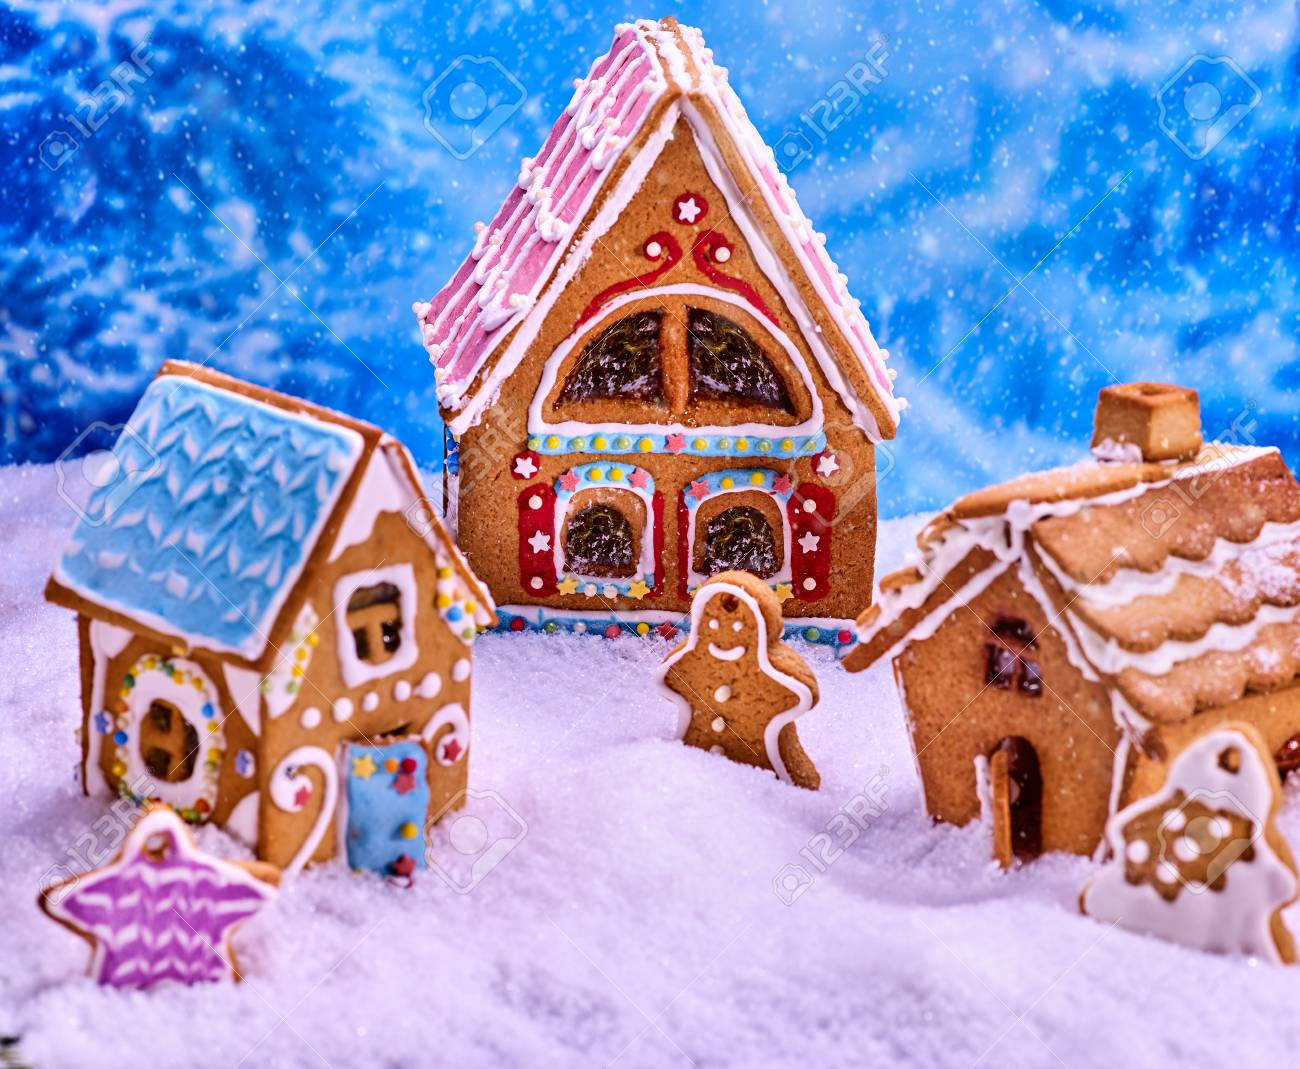 Christmas Tree With Ginger Bread House Cookies And Gingerbread Man For Xmas Gingerbread Man Food On Winter Morning Background Childrens Exhibition Of Gingerbread Products Banco De Imagens Royalty Free Ilustracoes Imagens E